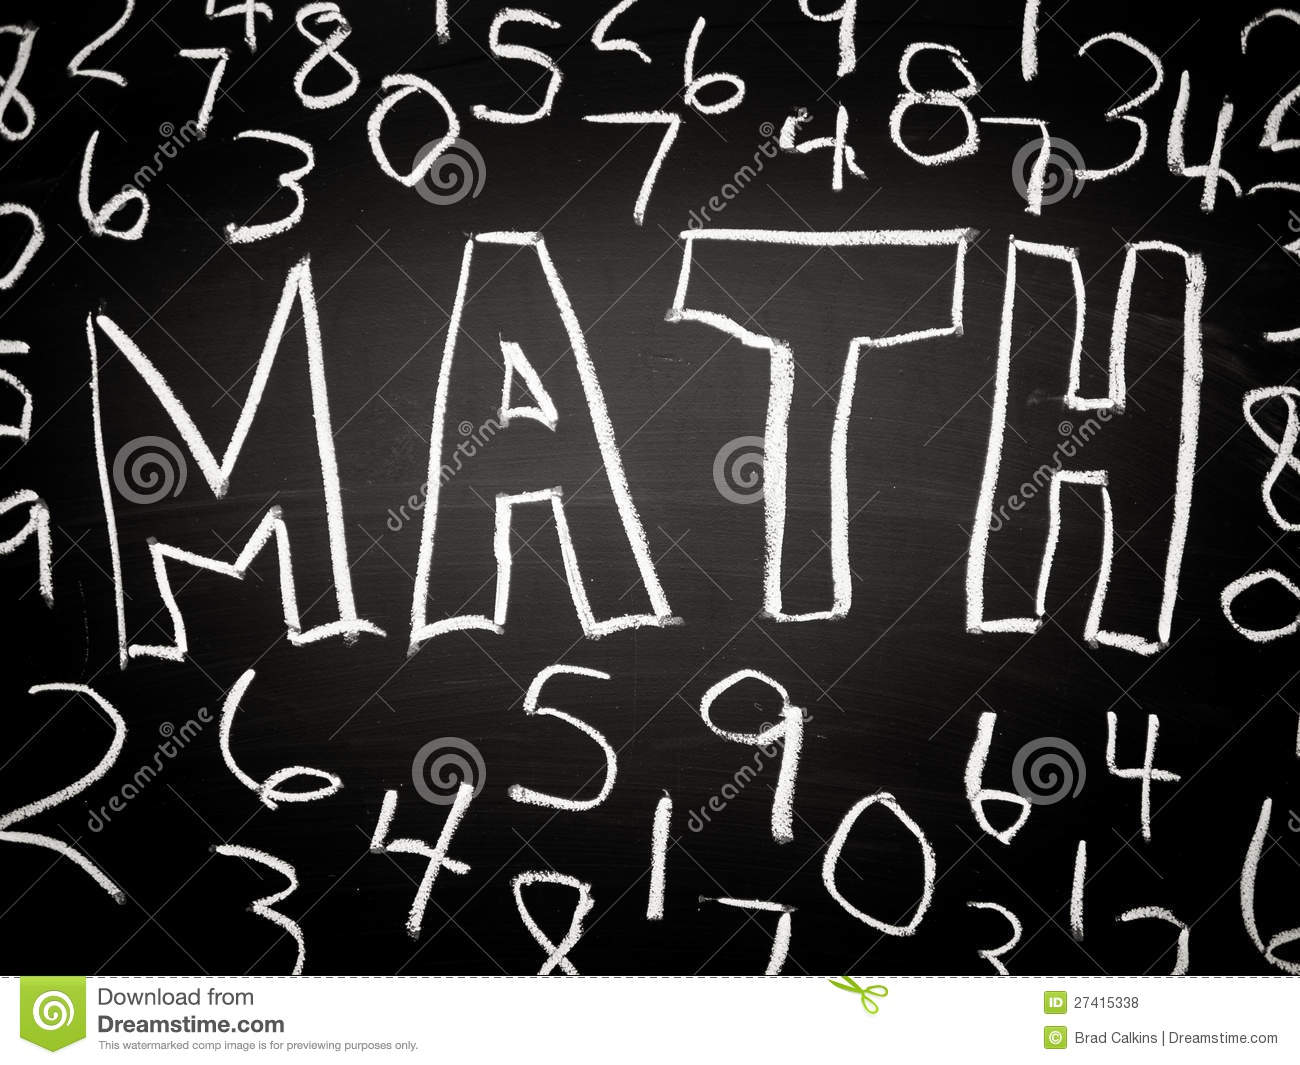 Algebra backgrounds for powerpoint mathematics 05 powerpoint templates alramifo Gallery